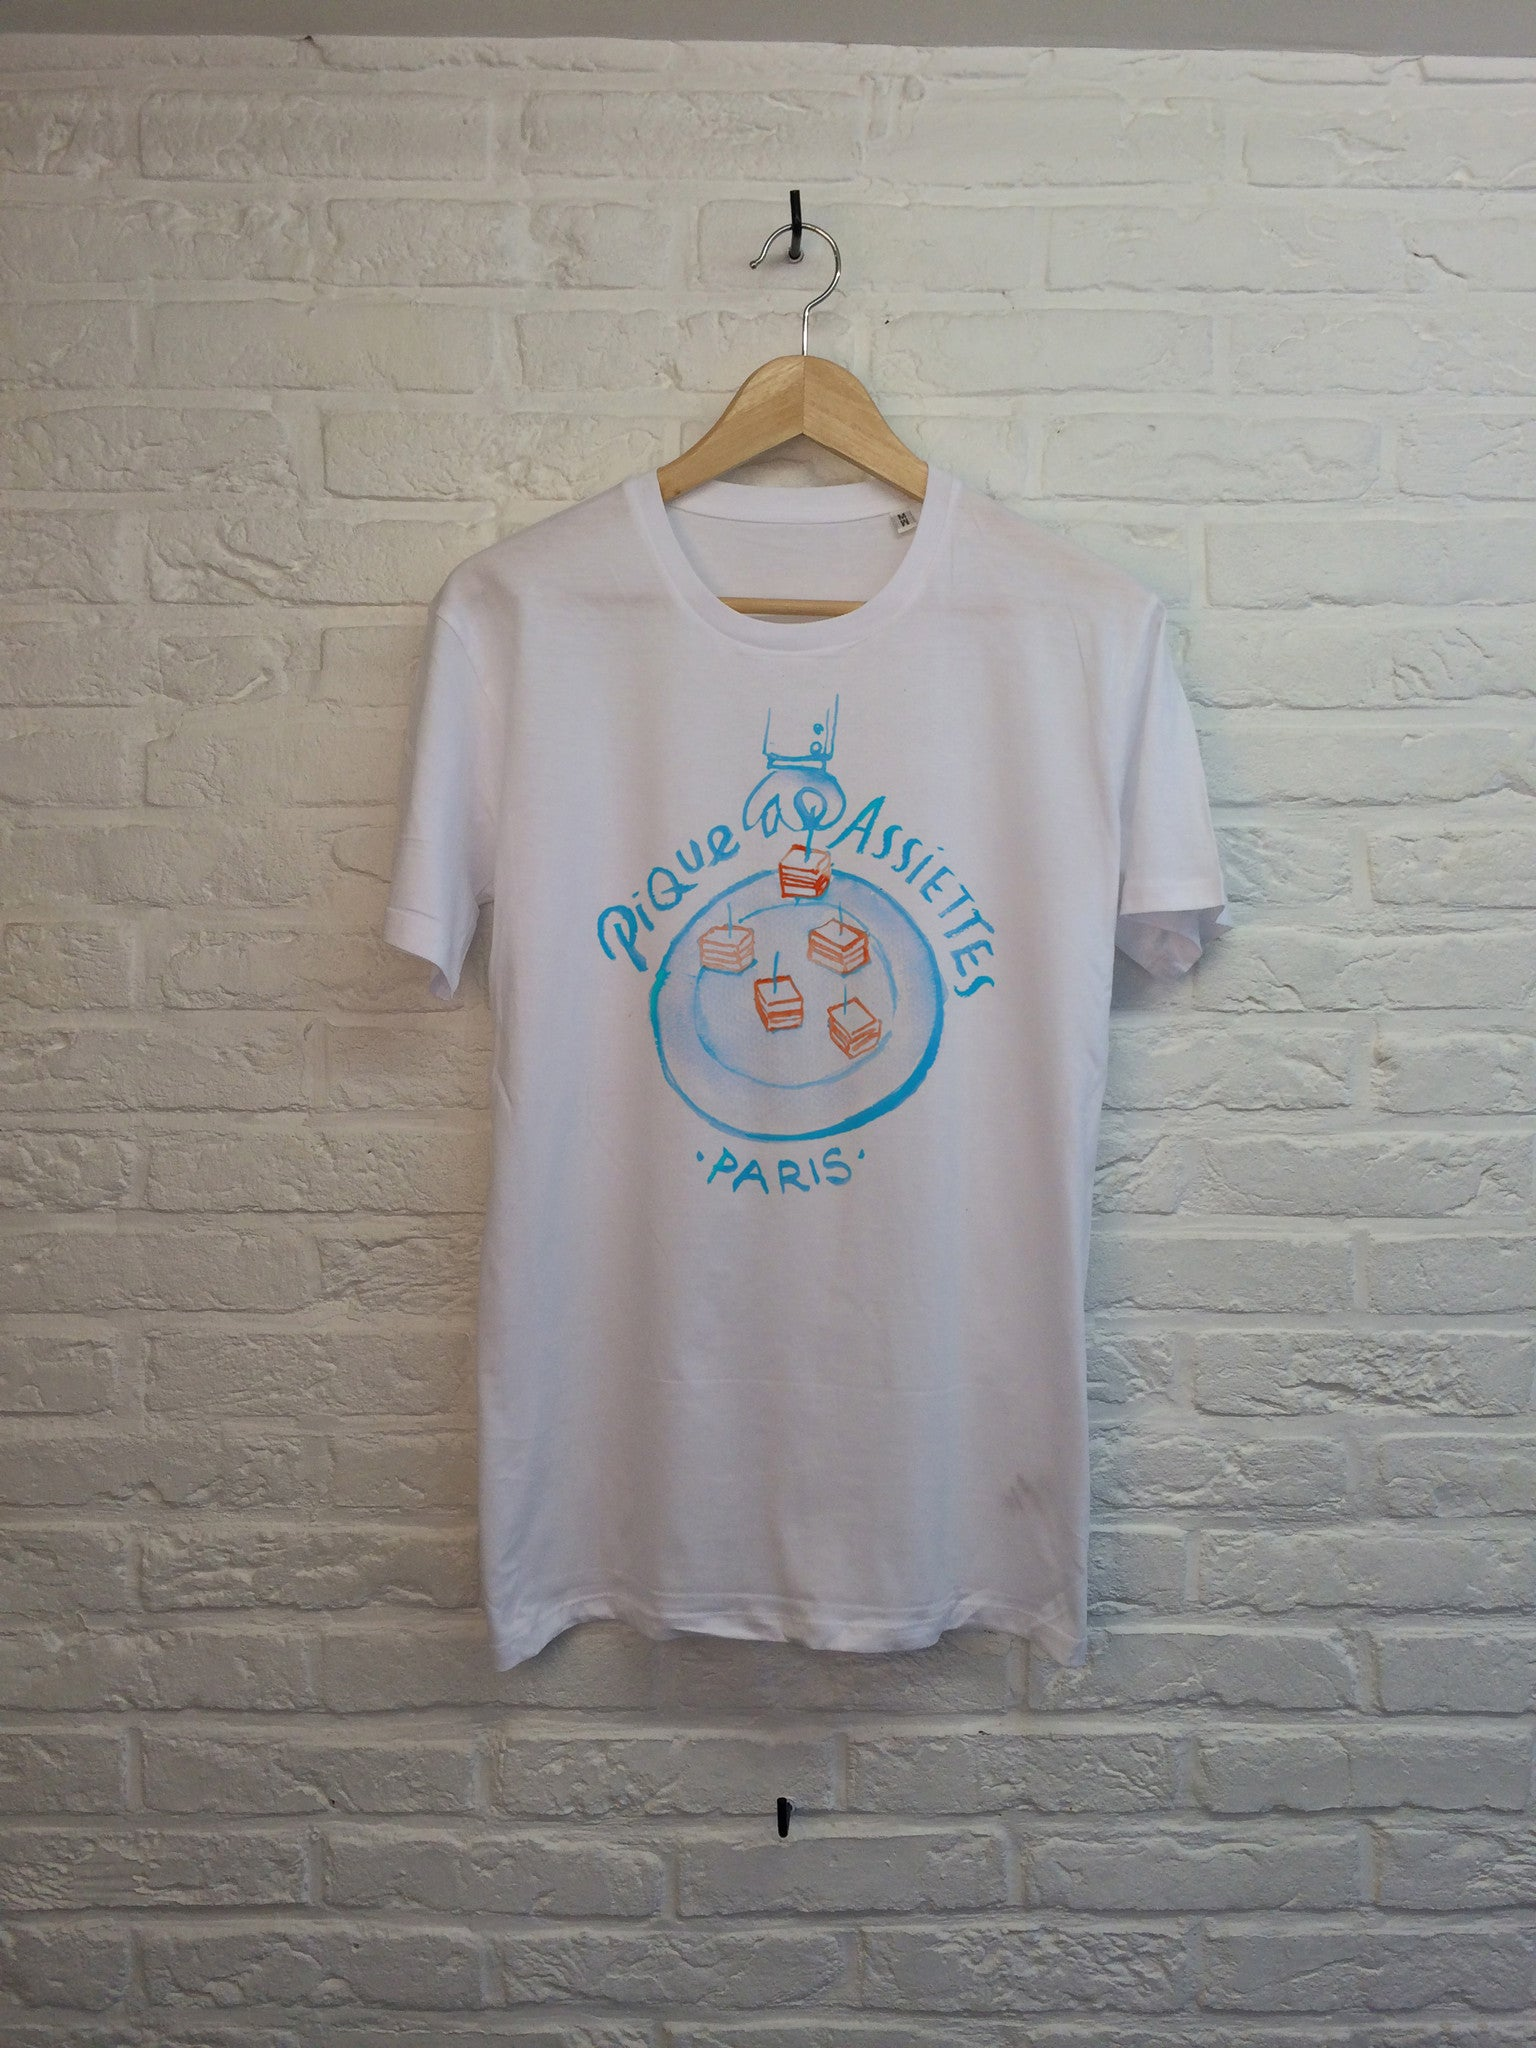 TH Gallery - Pique Assiette-T shirt-Atelier Amelot